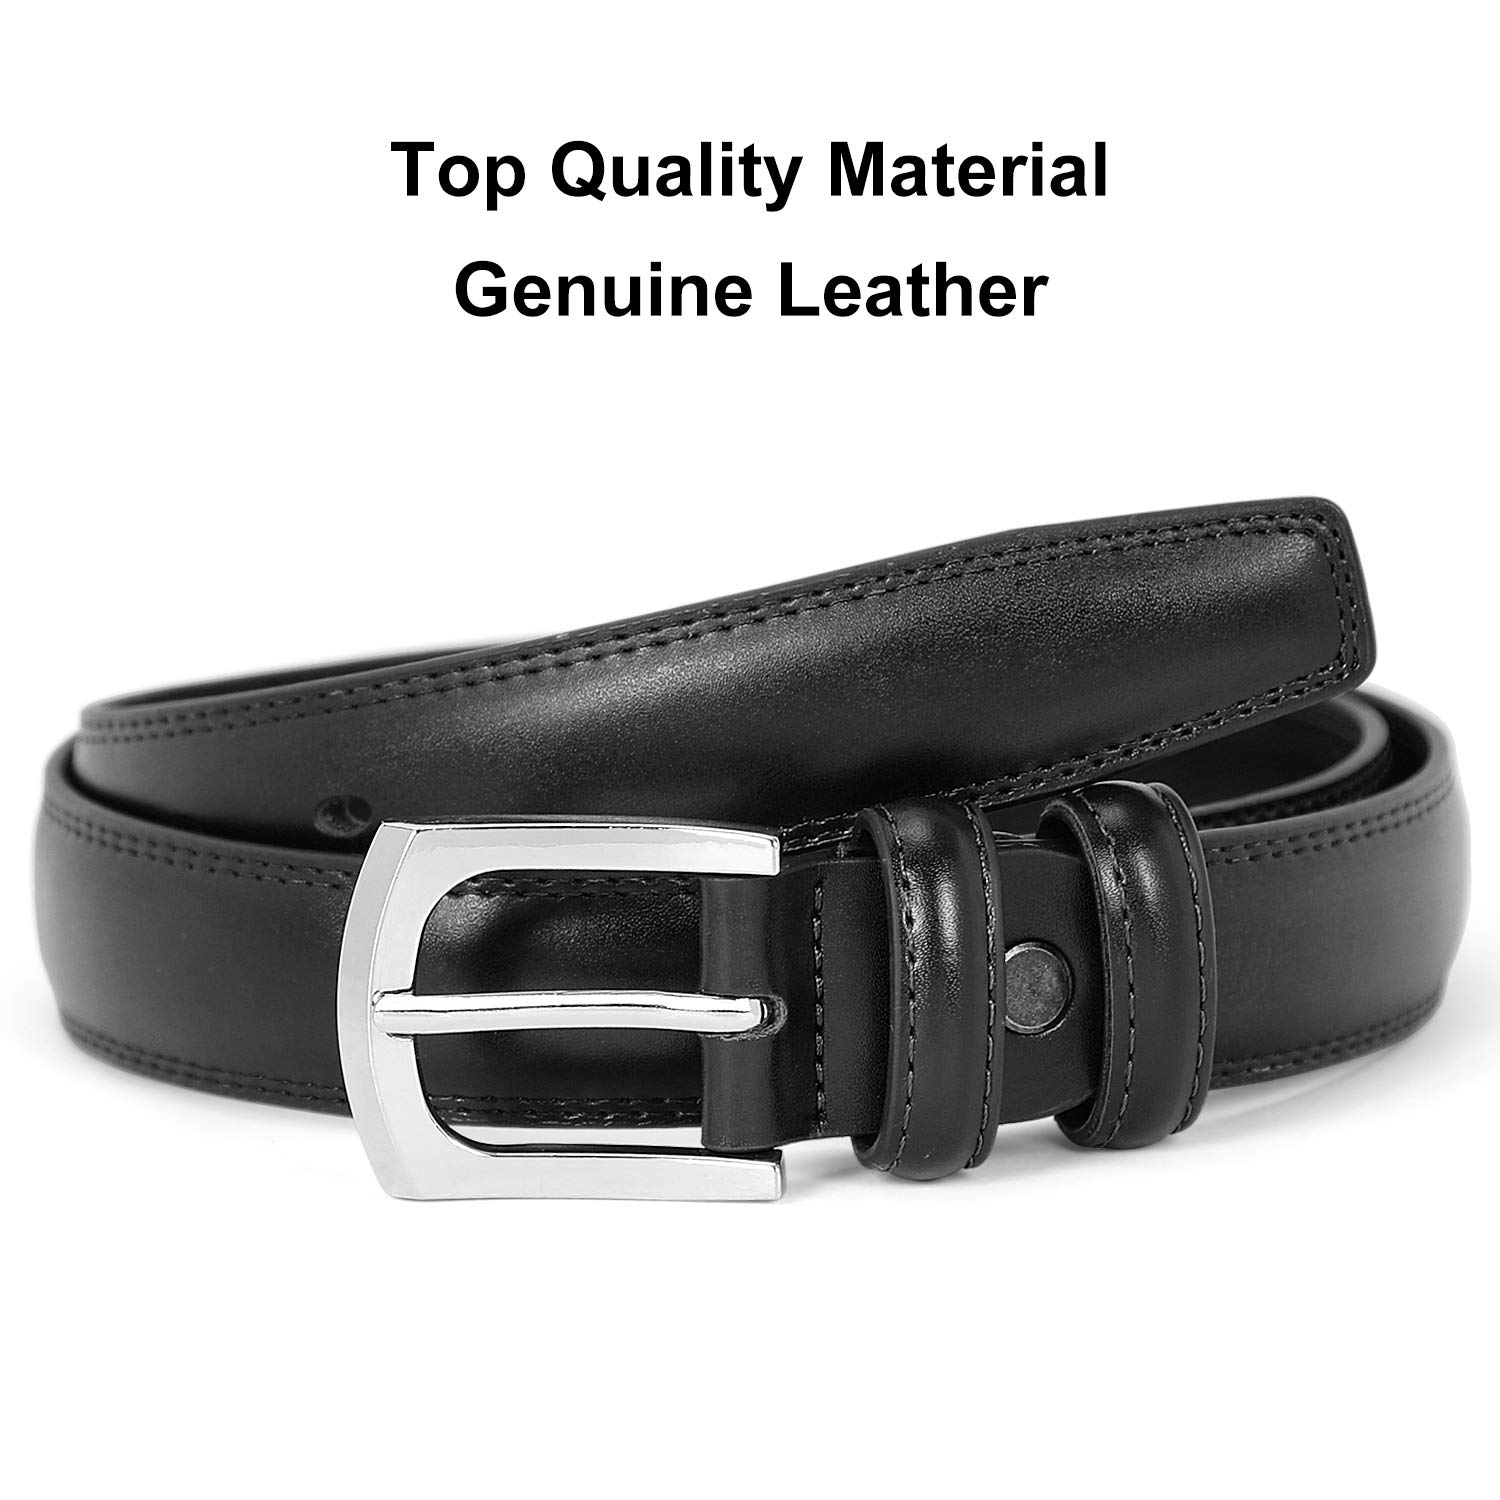 JASGOOD Men\'s Belt, Genuine Leather Dress Belt with Prong Buckle Classic Casual Belt (1-Black, Suit for Waist Size 39-43 Inches)